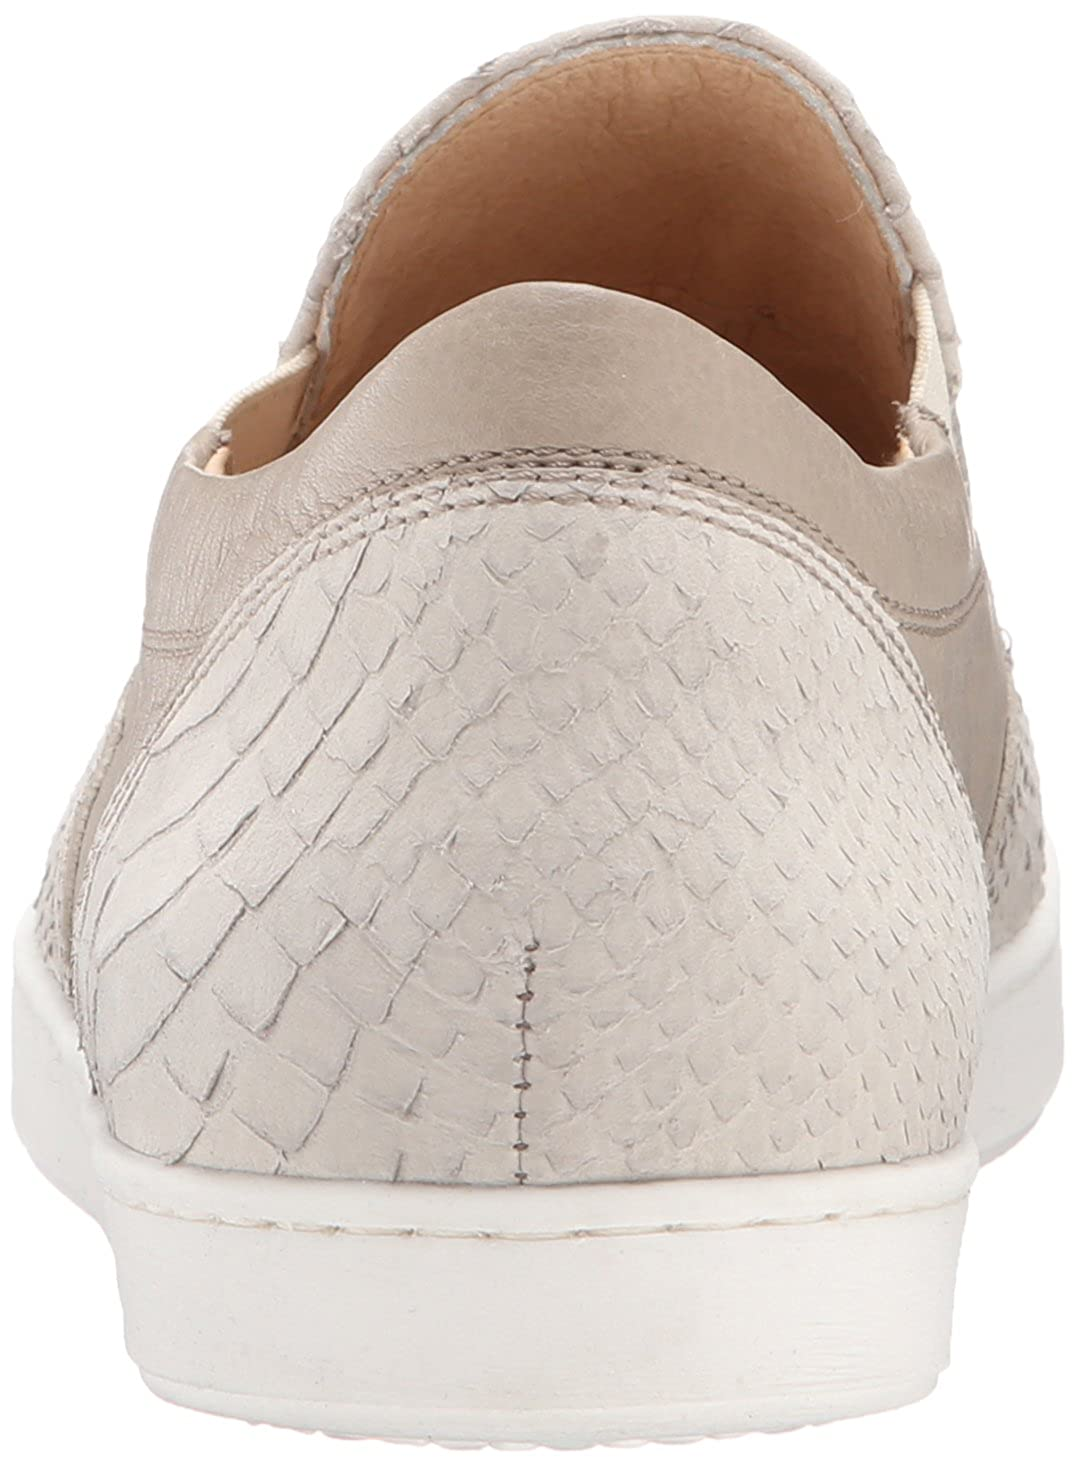 French Sole FS NY NY FS Women's Oasis Fashion Sneaker Parent B00WU6WQ9K af2dbf